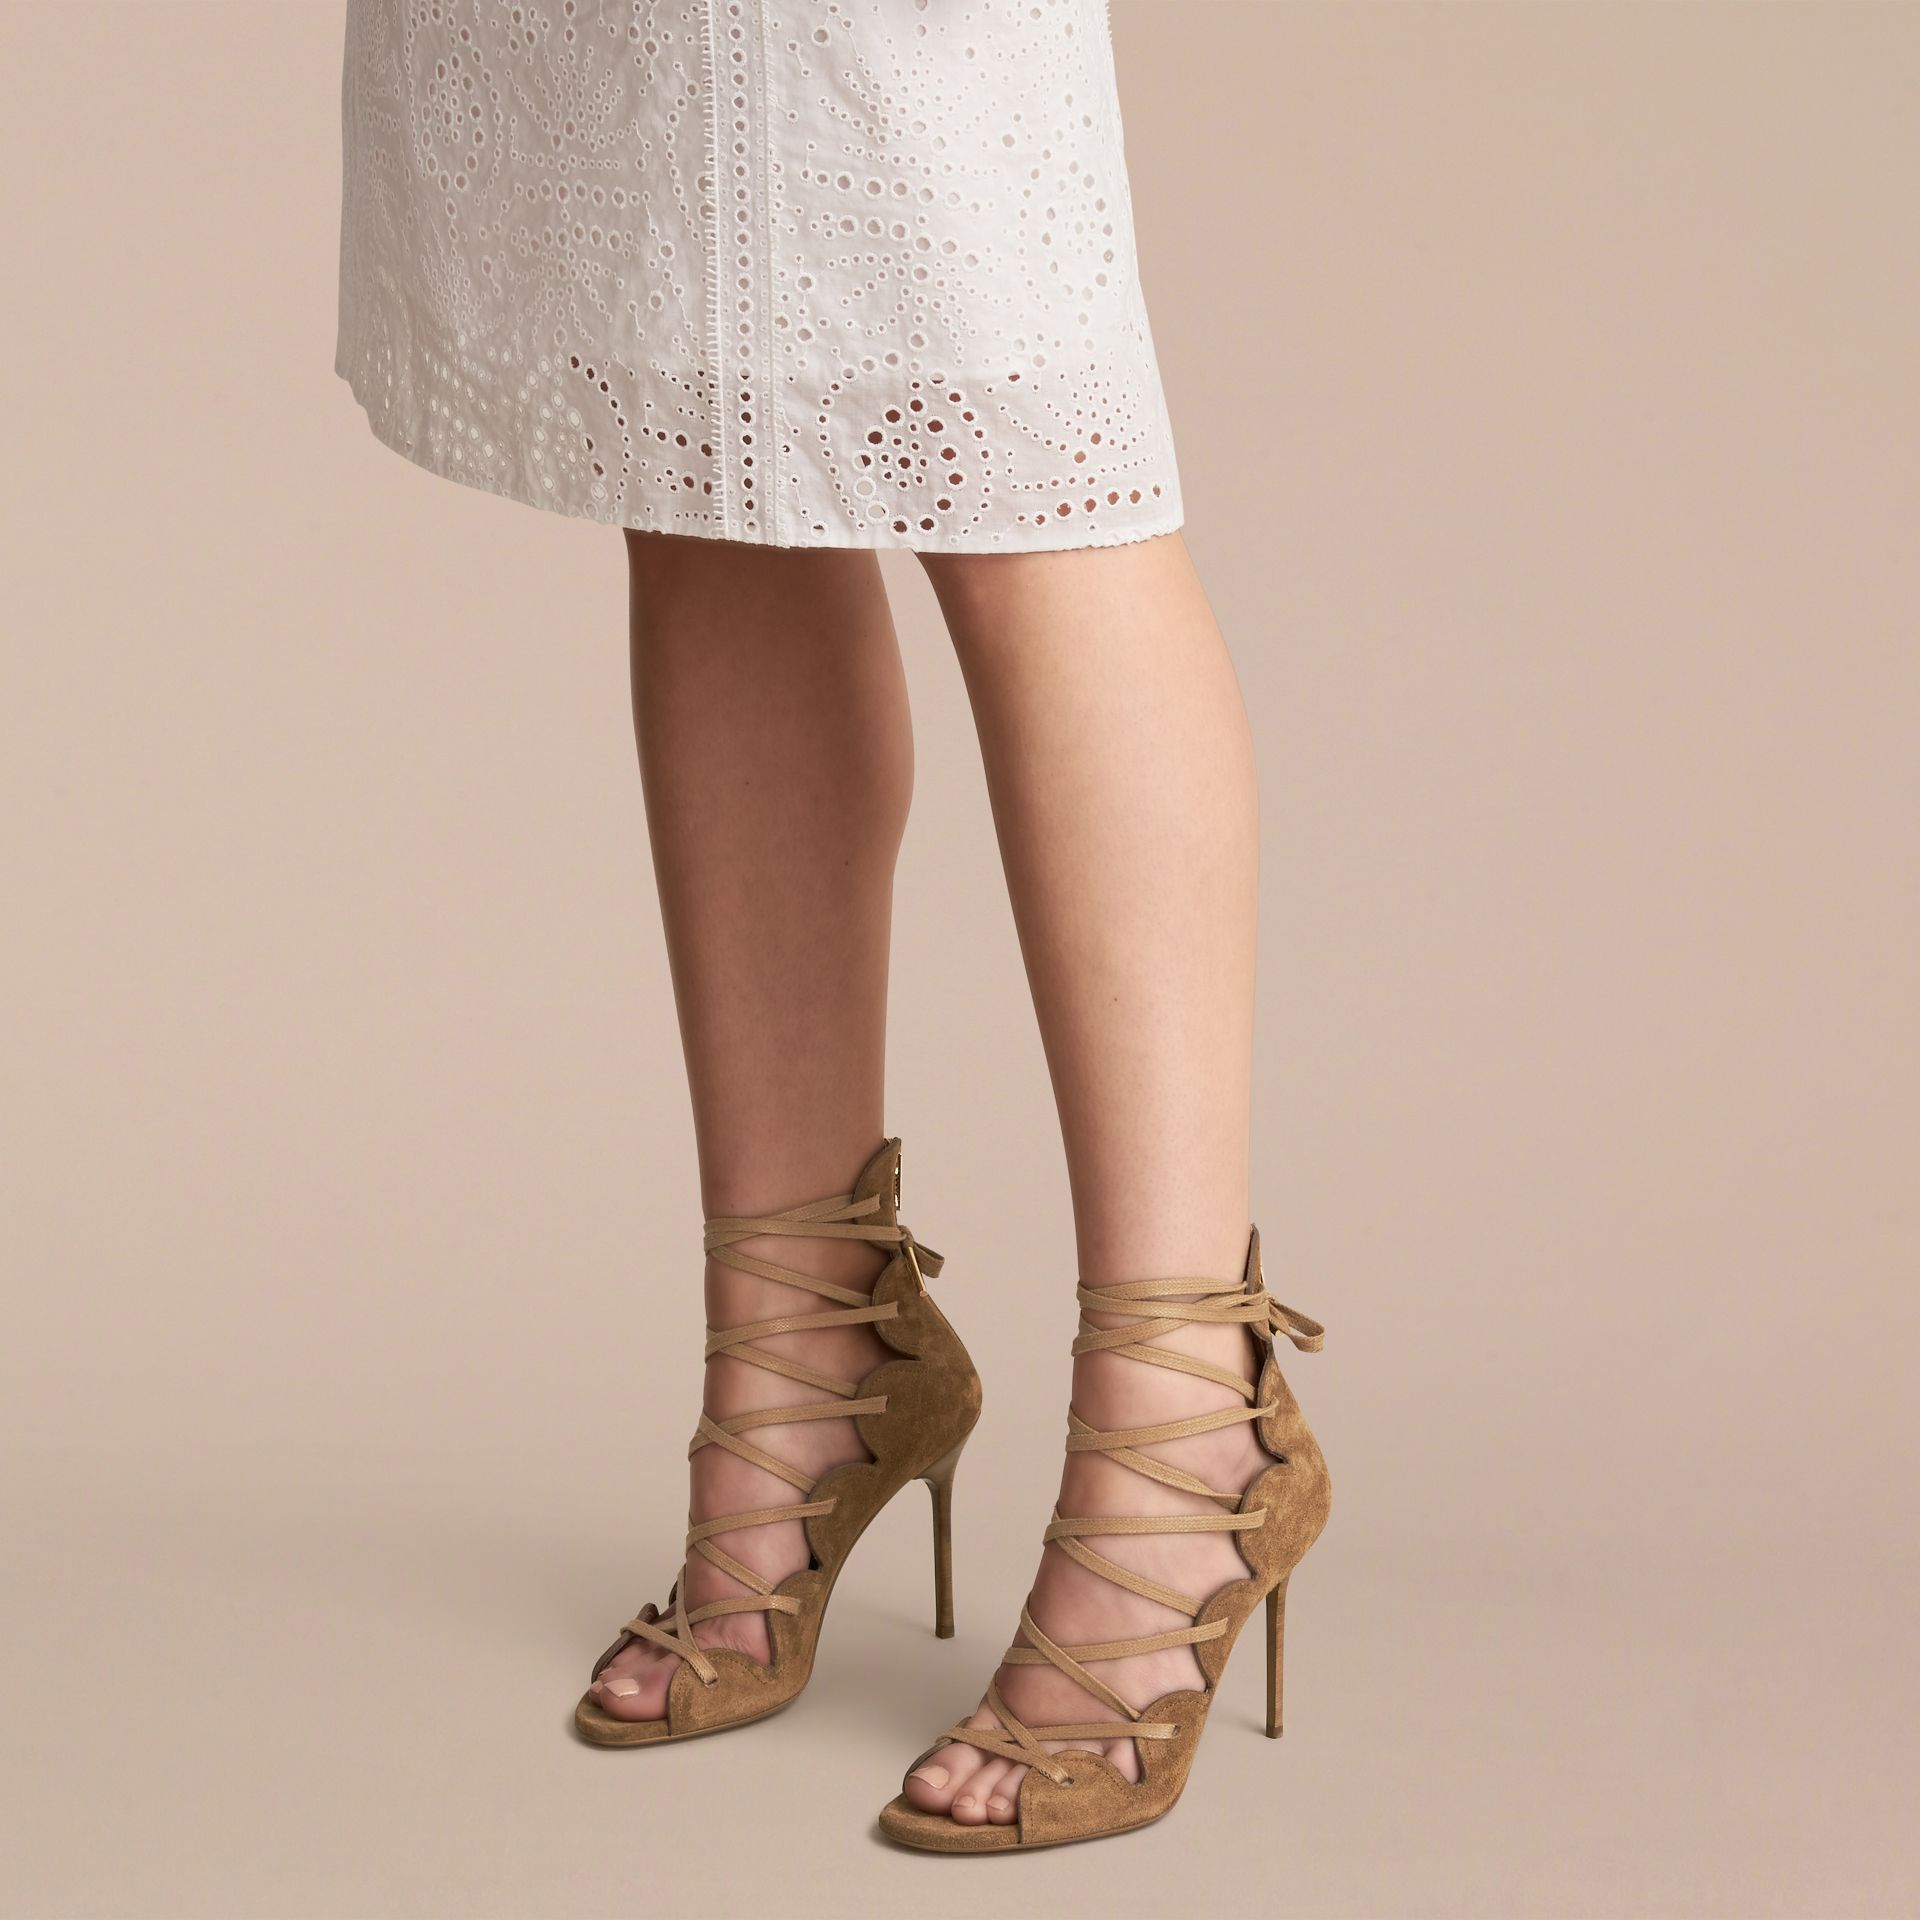 Scalloped Suede Lace-up Sandals in Sandstone - Women | Burberry - gallery image 3